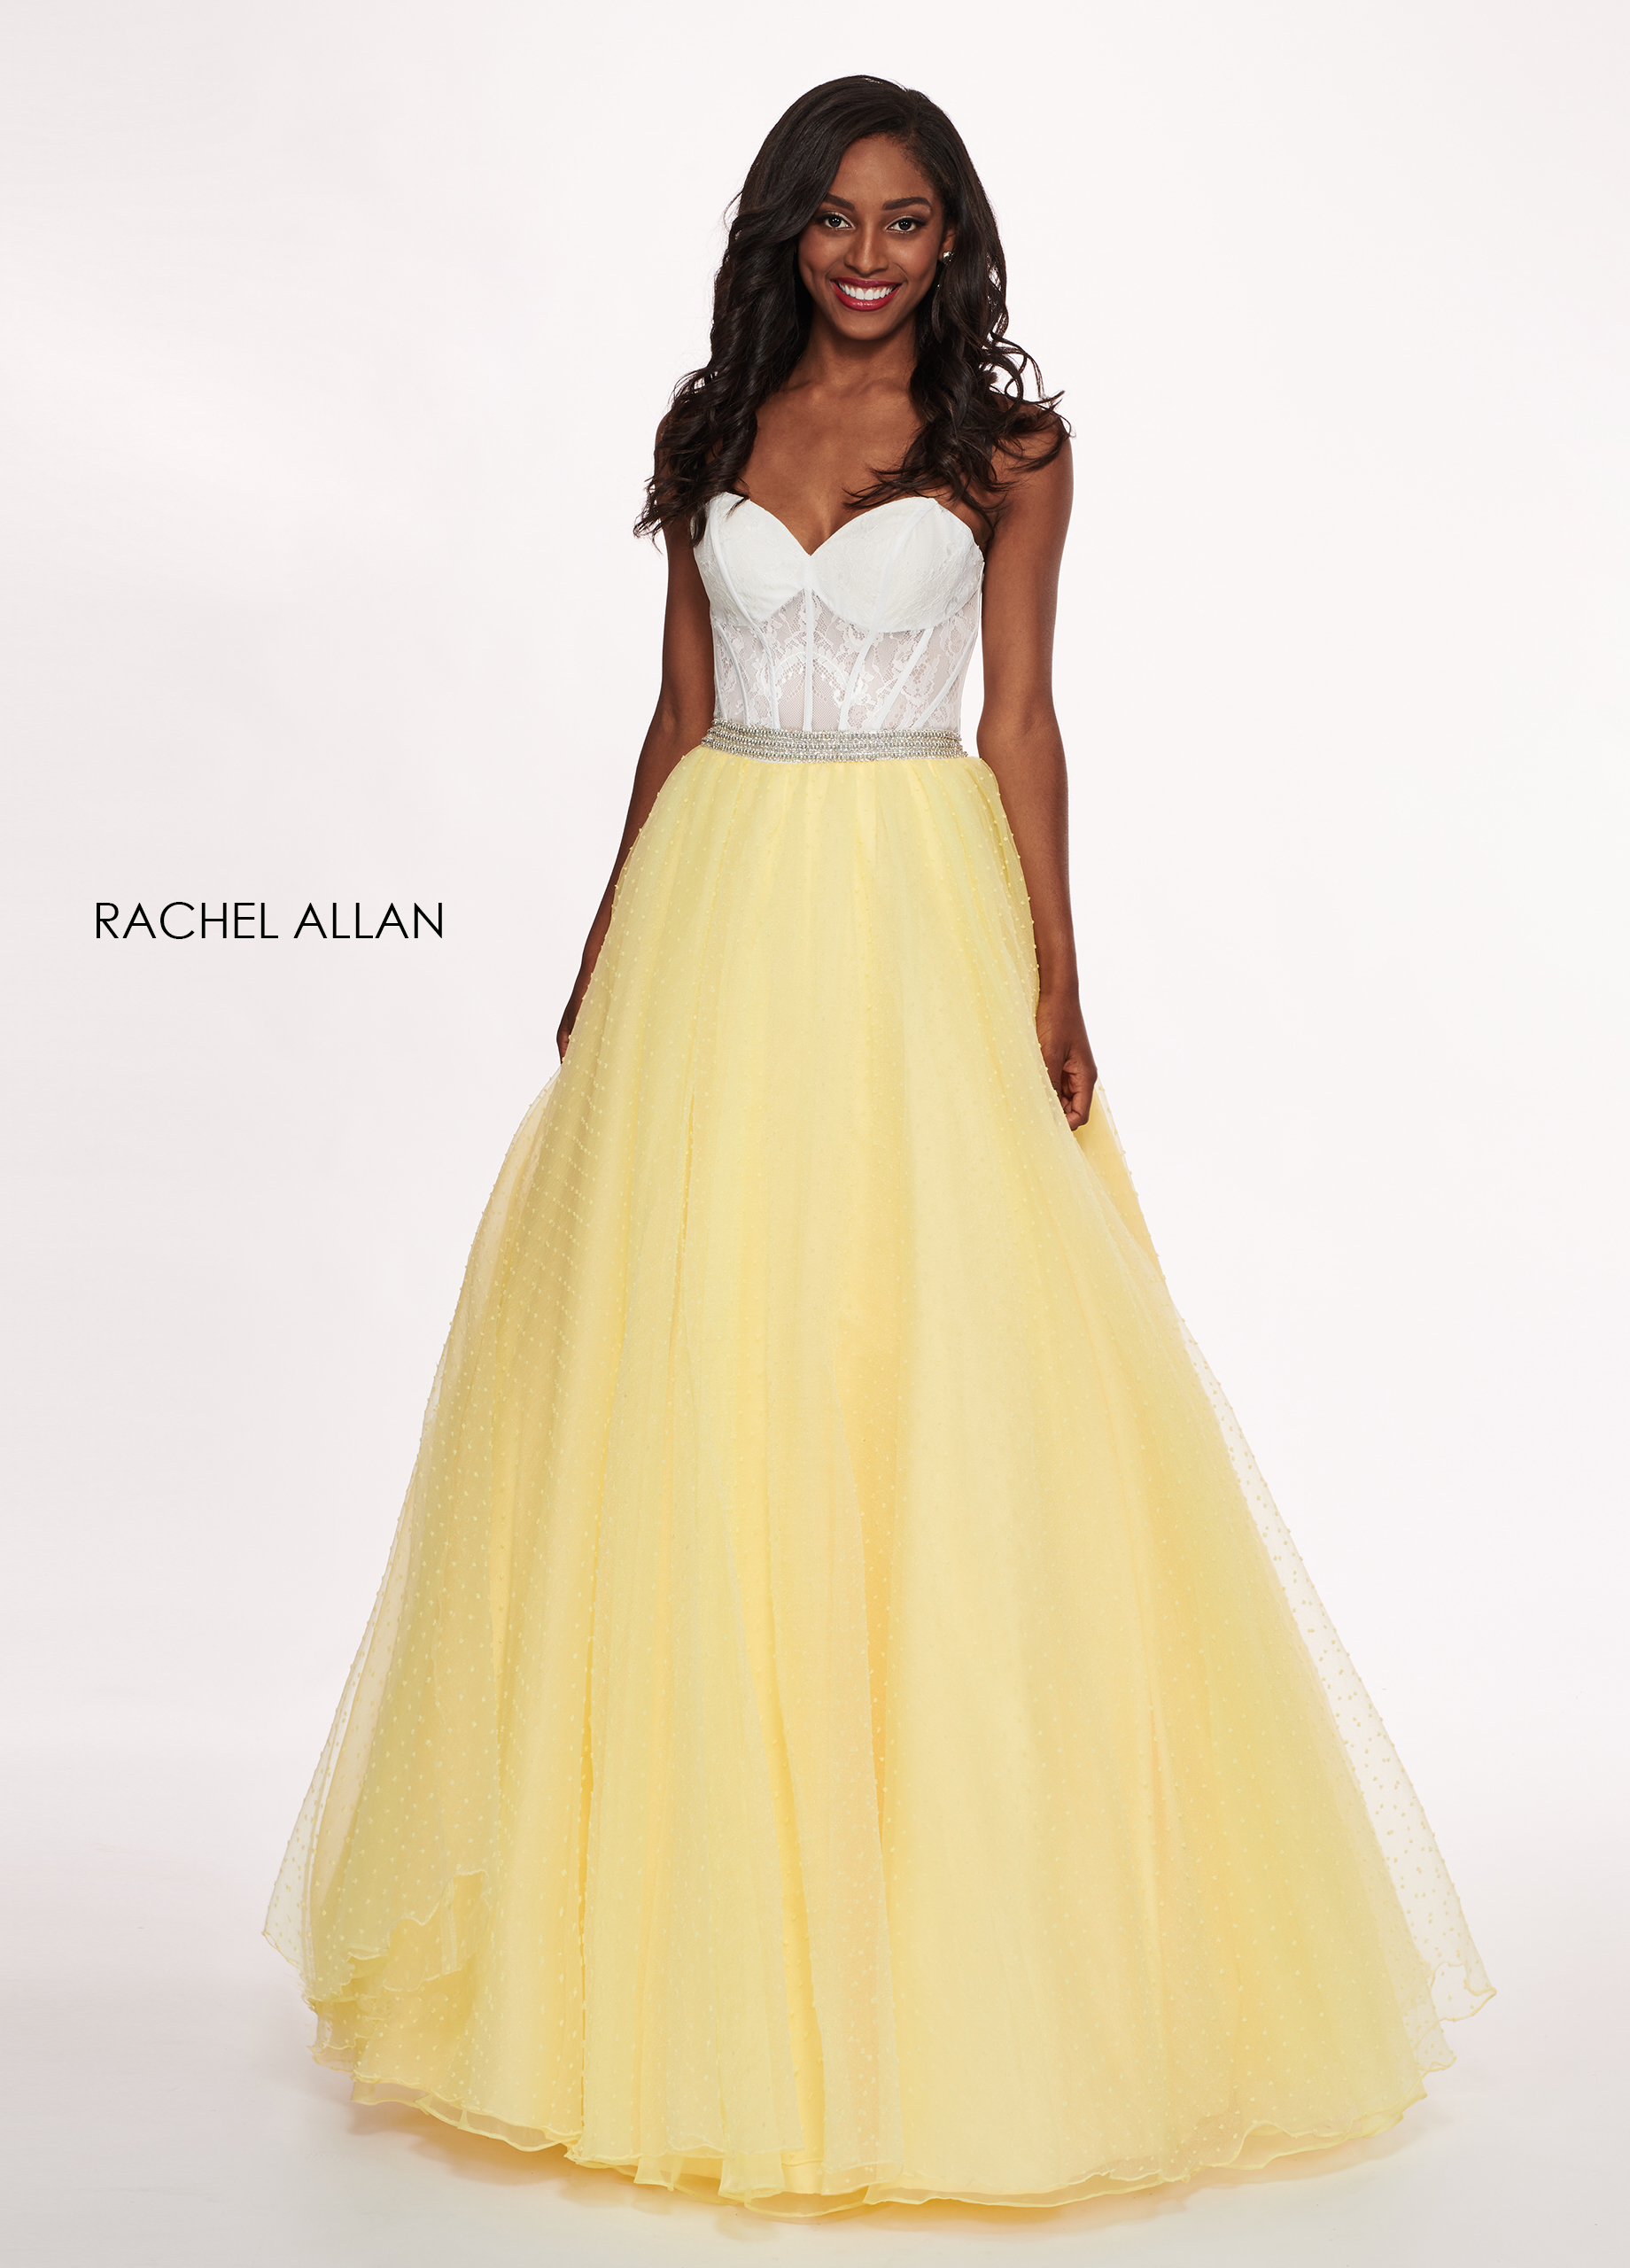 Sweetheart Ball Gowns Prom Dresses in Yellow Color